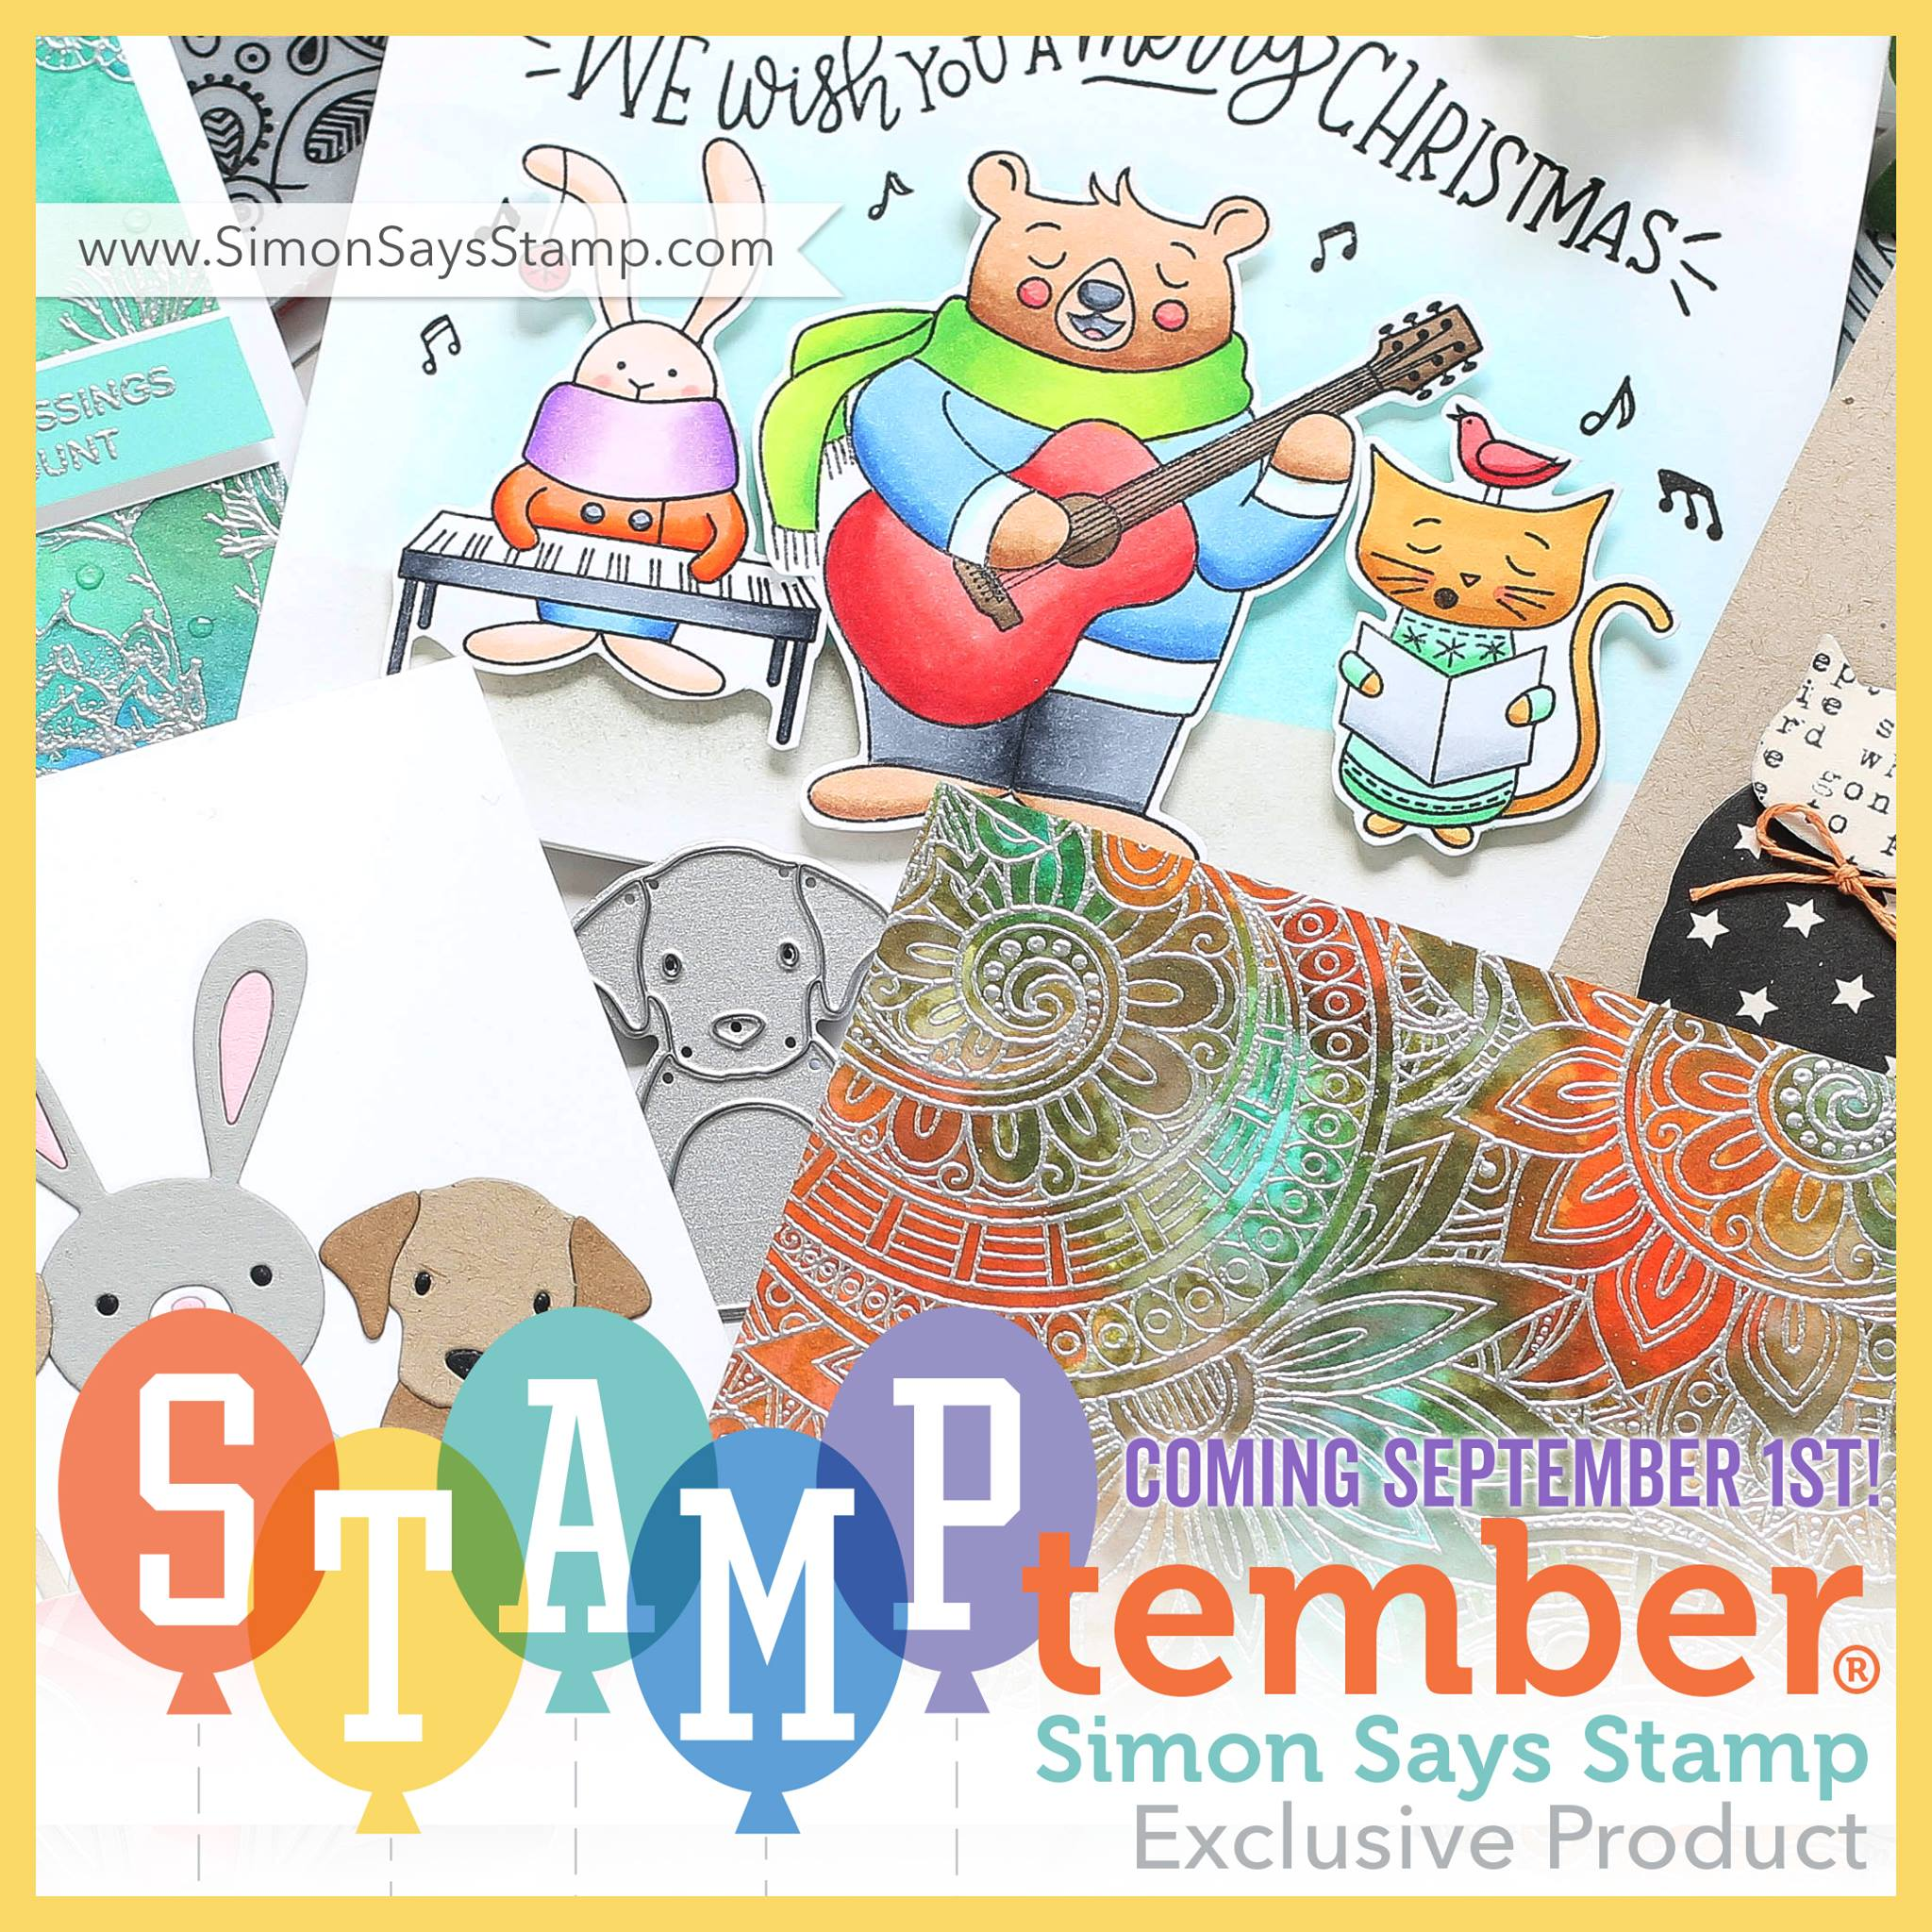 simon-says-stamp-stamptember-release-50-prize-pack-giveaway